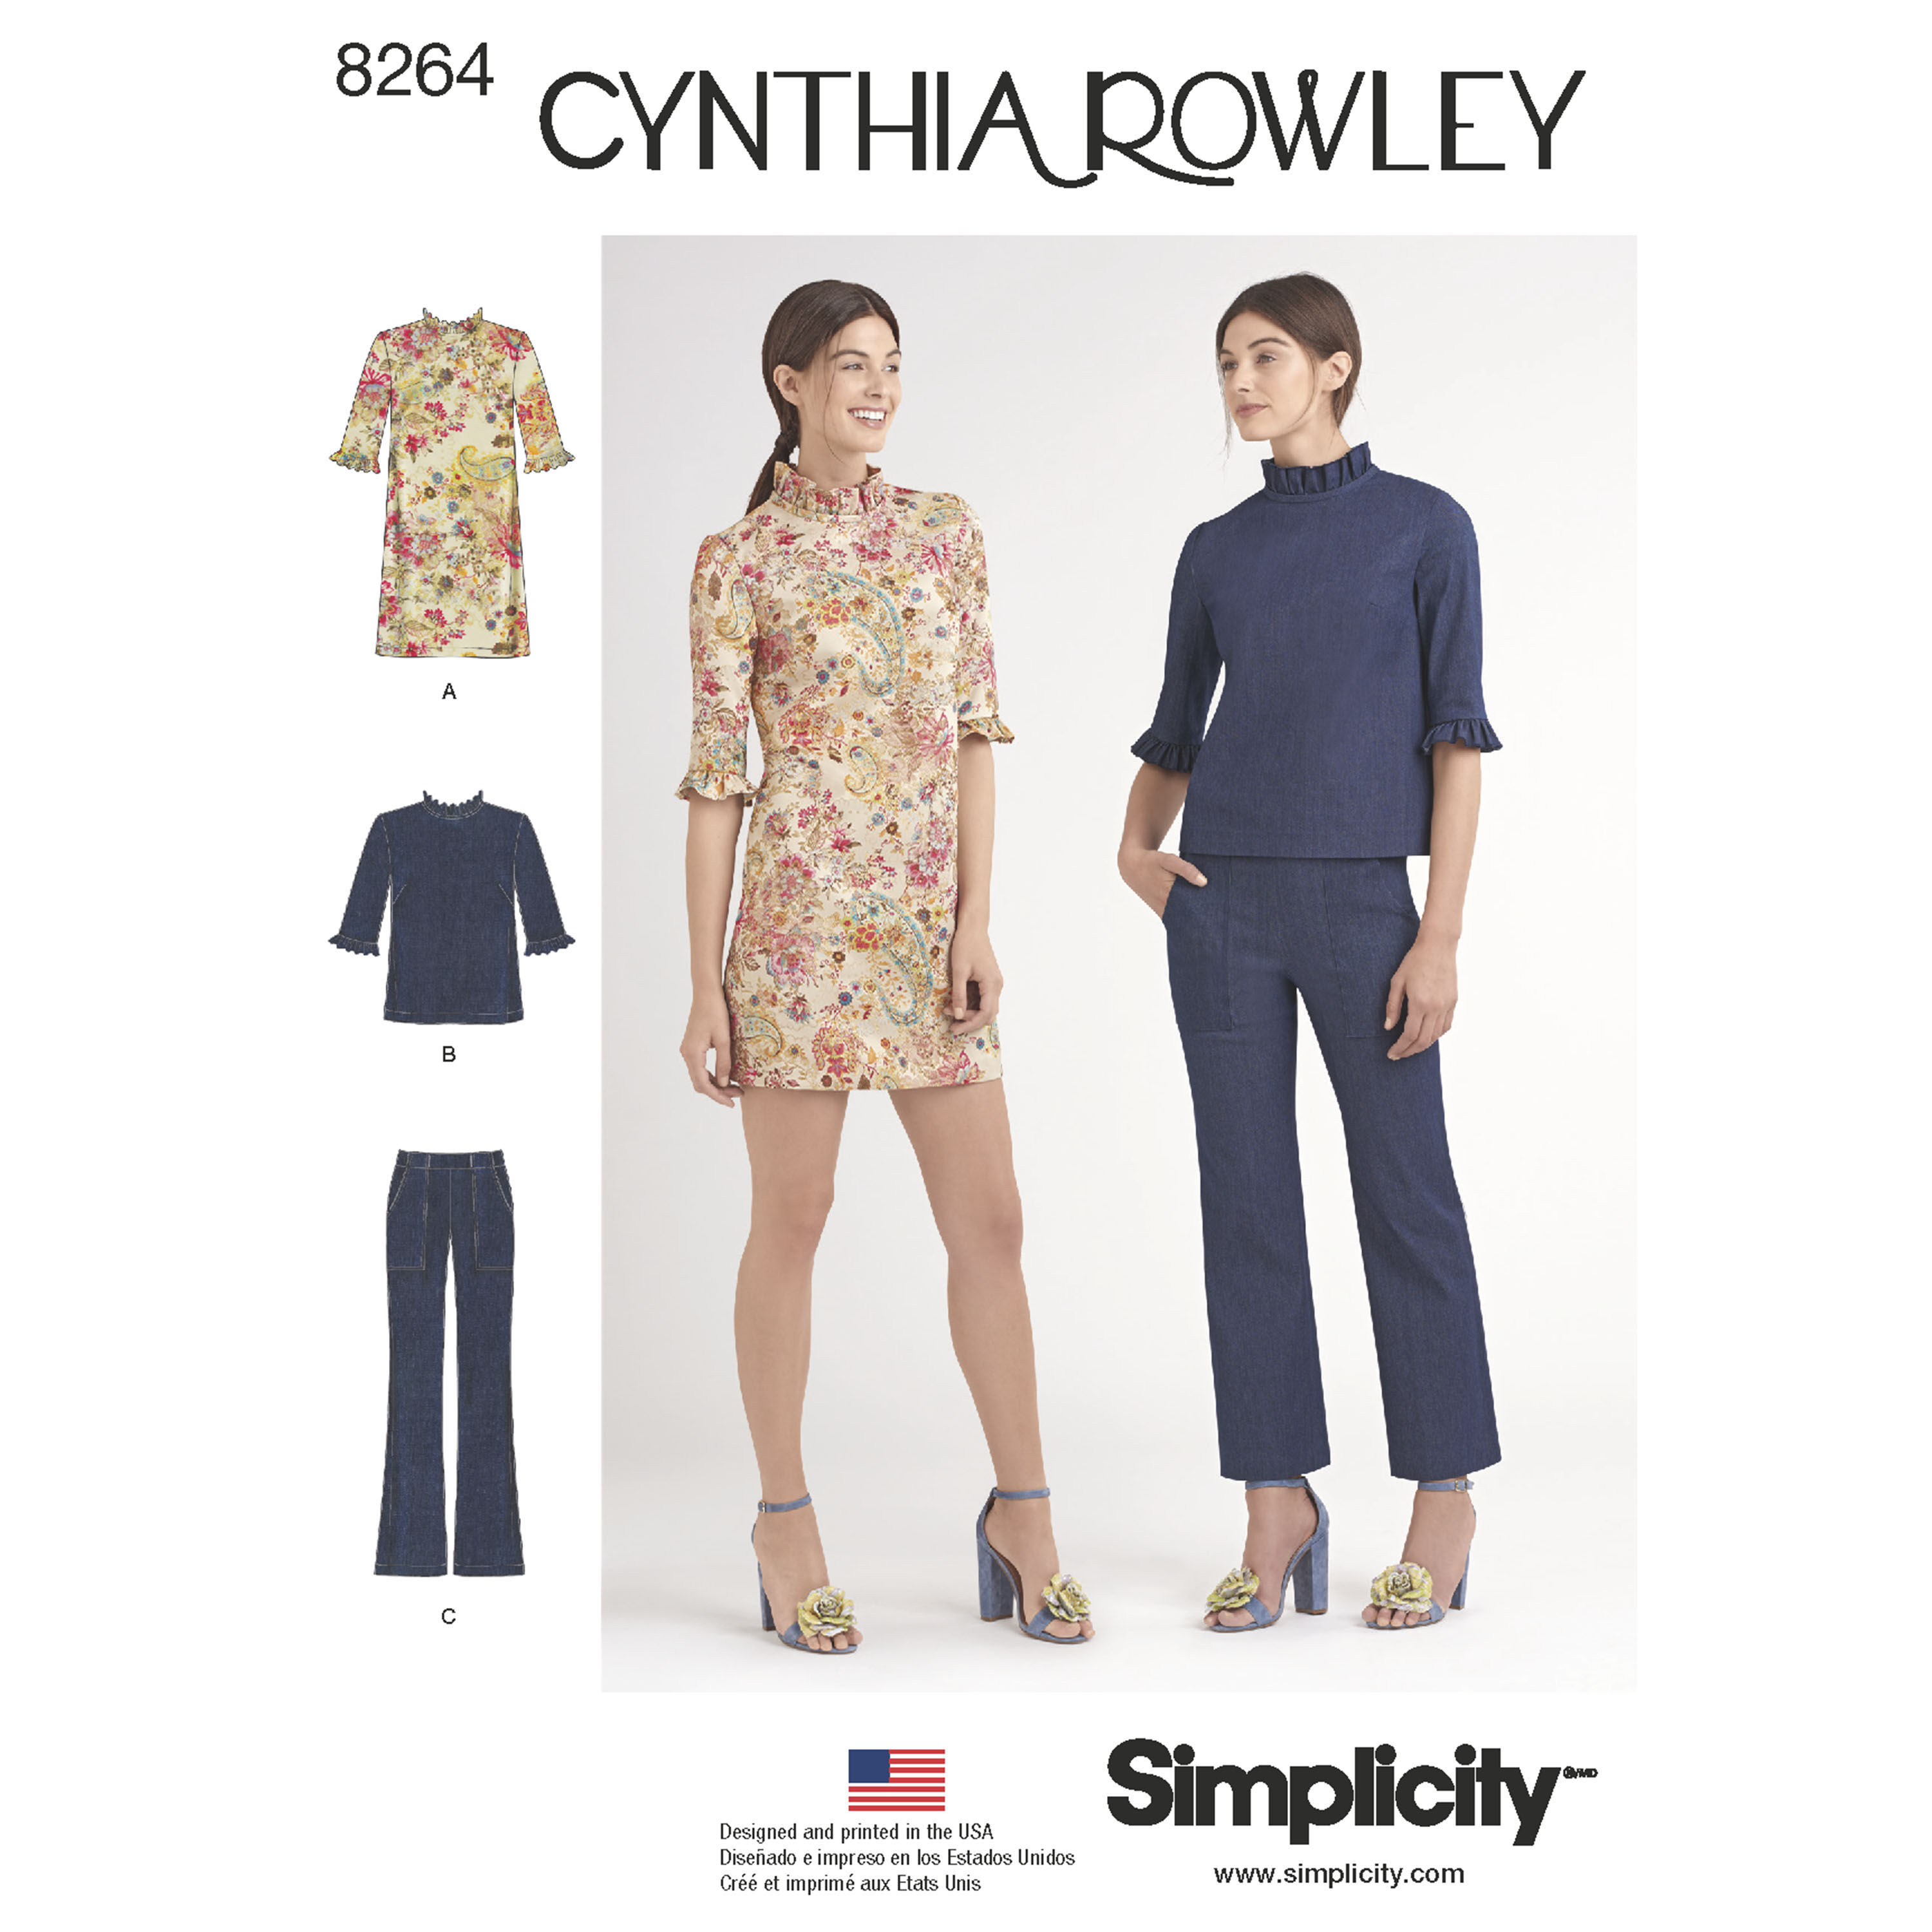 Simplicity Pattern 8264 Misses' Mini Dress, Top and Pants